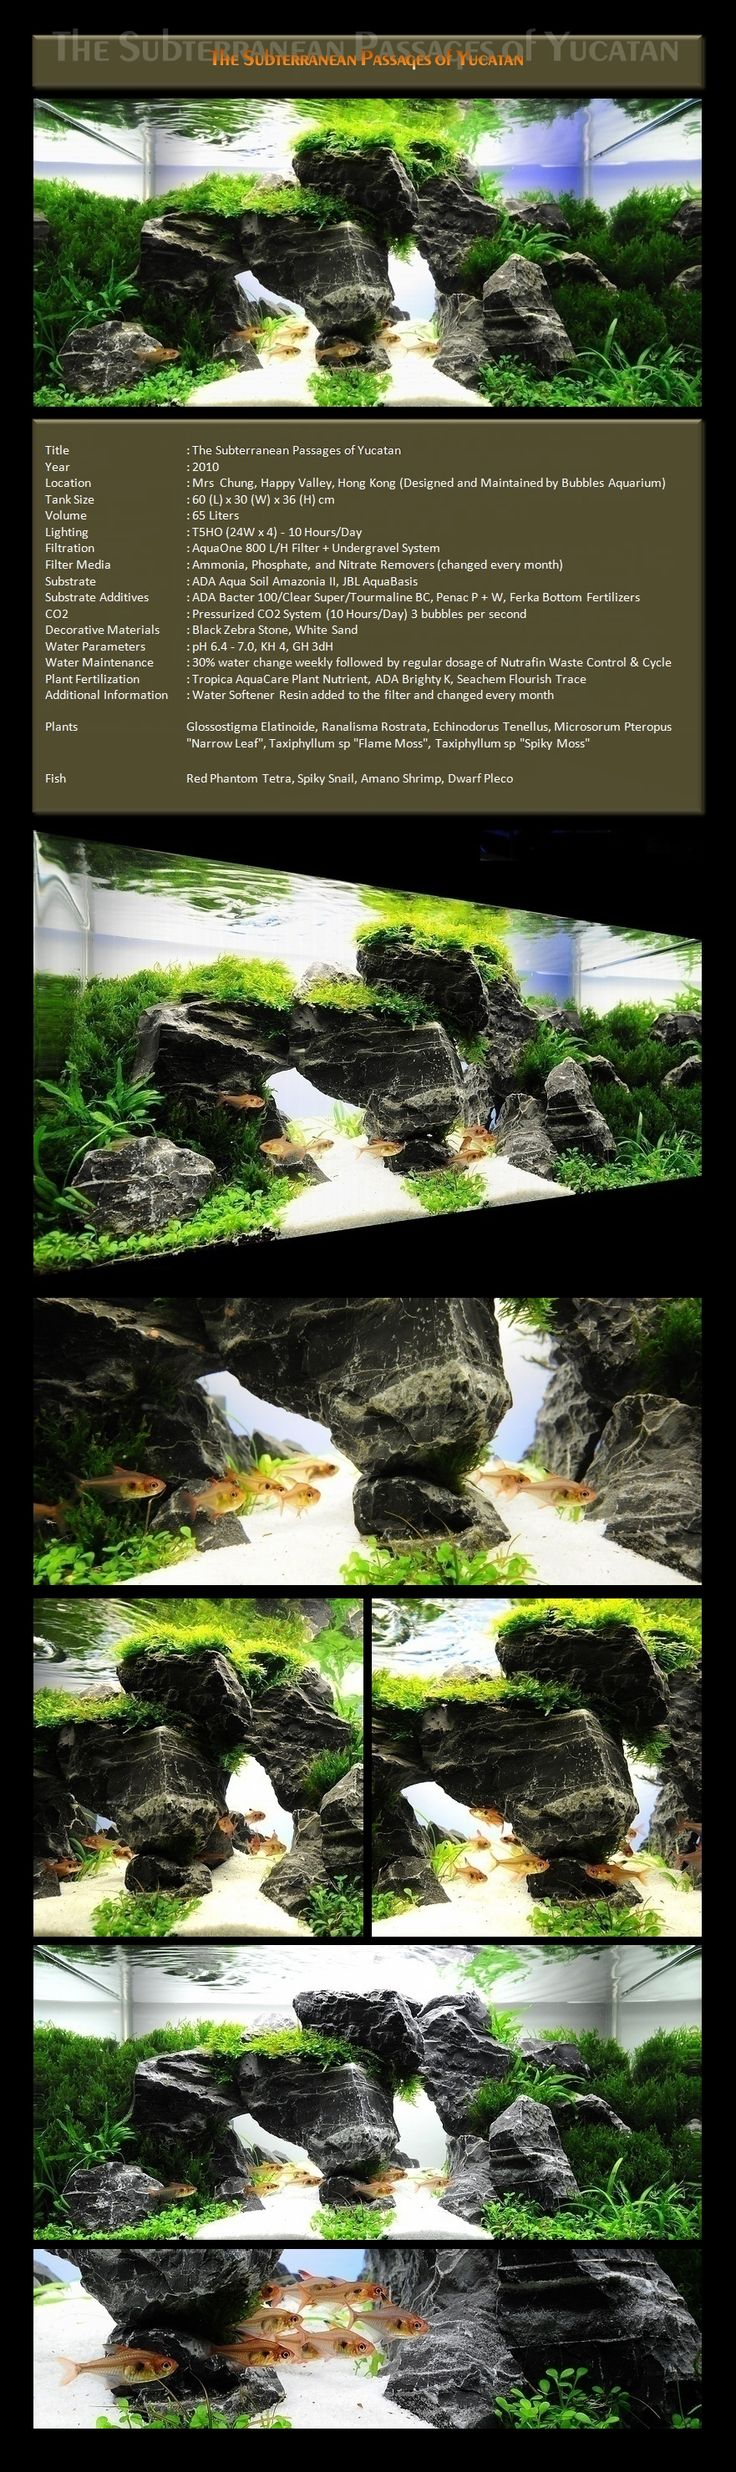 Bubbles Aquarium - Aquascapes (2009 Aquascaping Gallery)